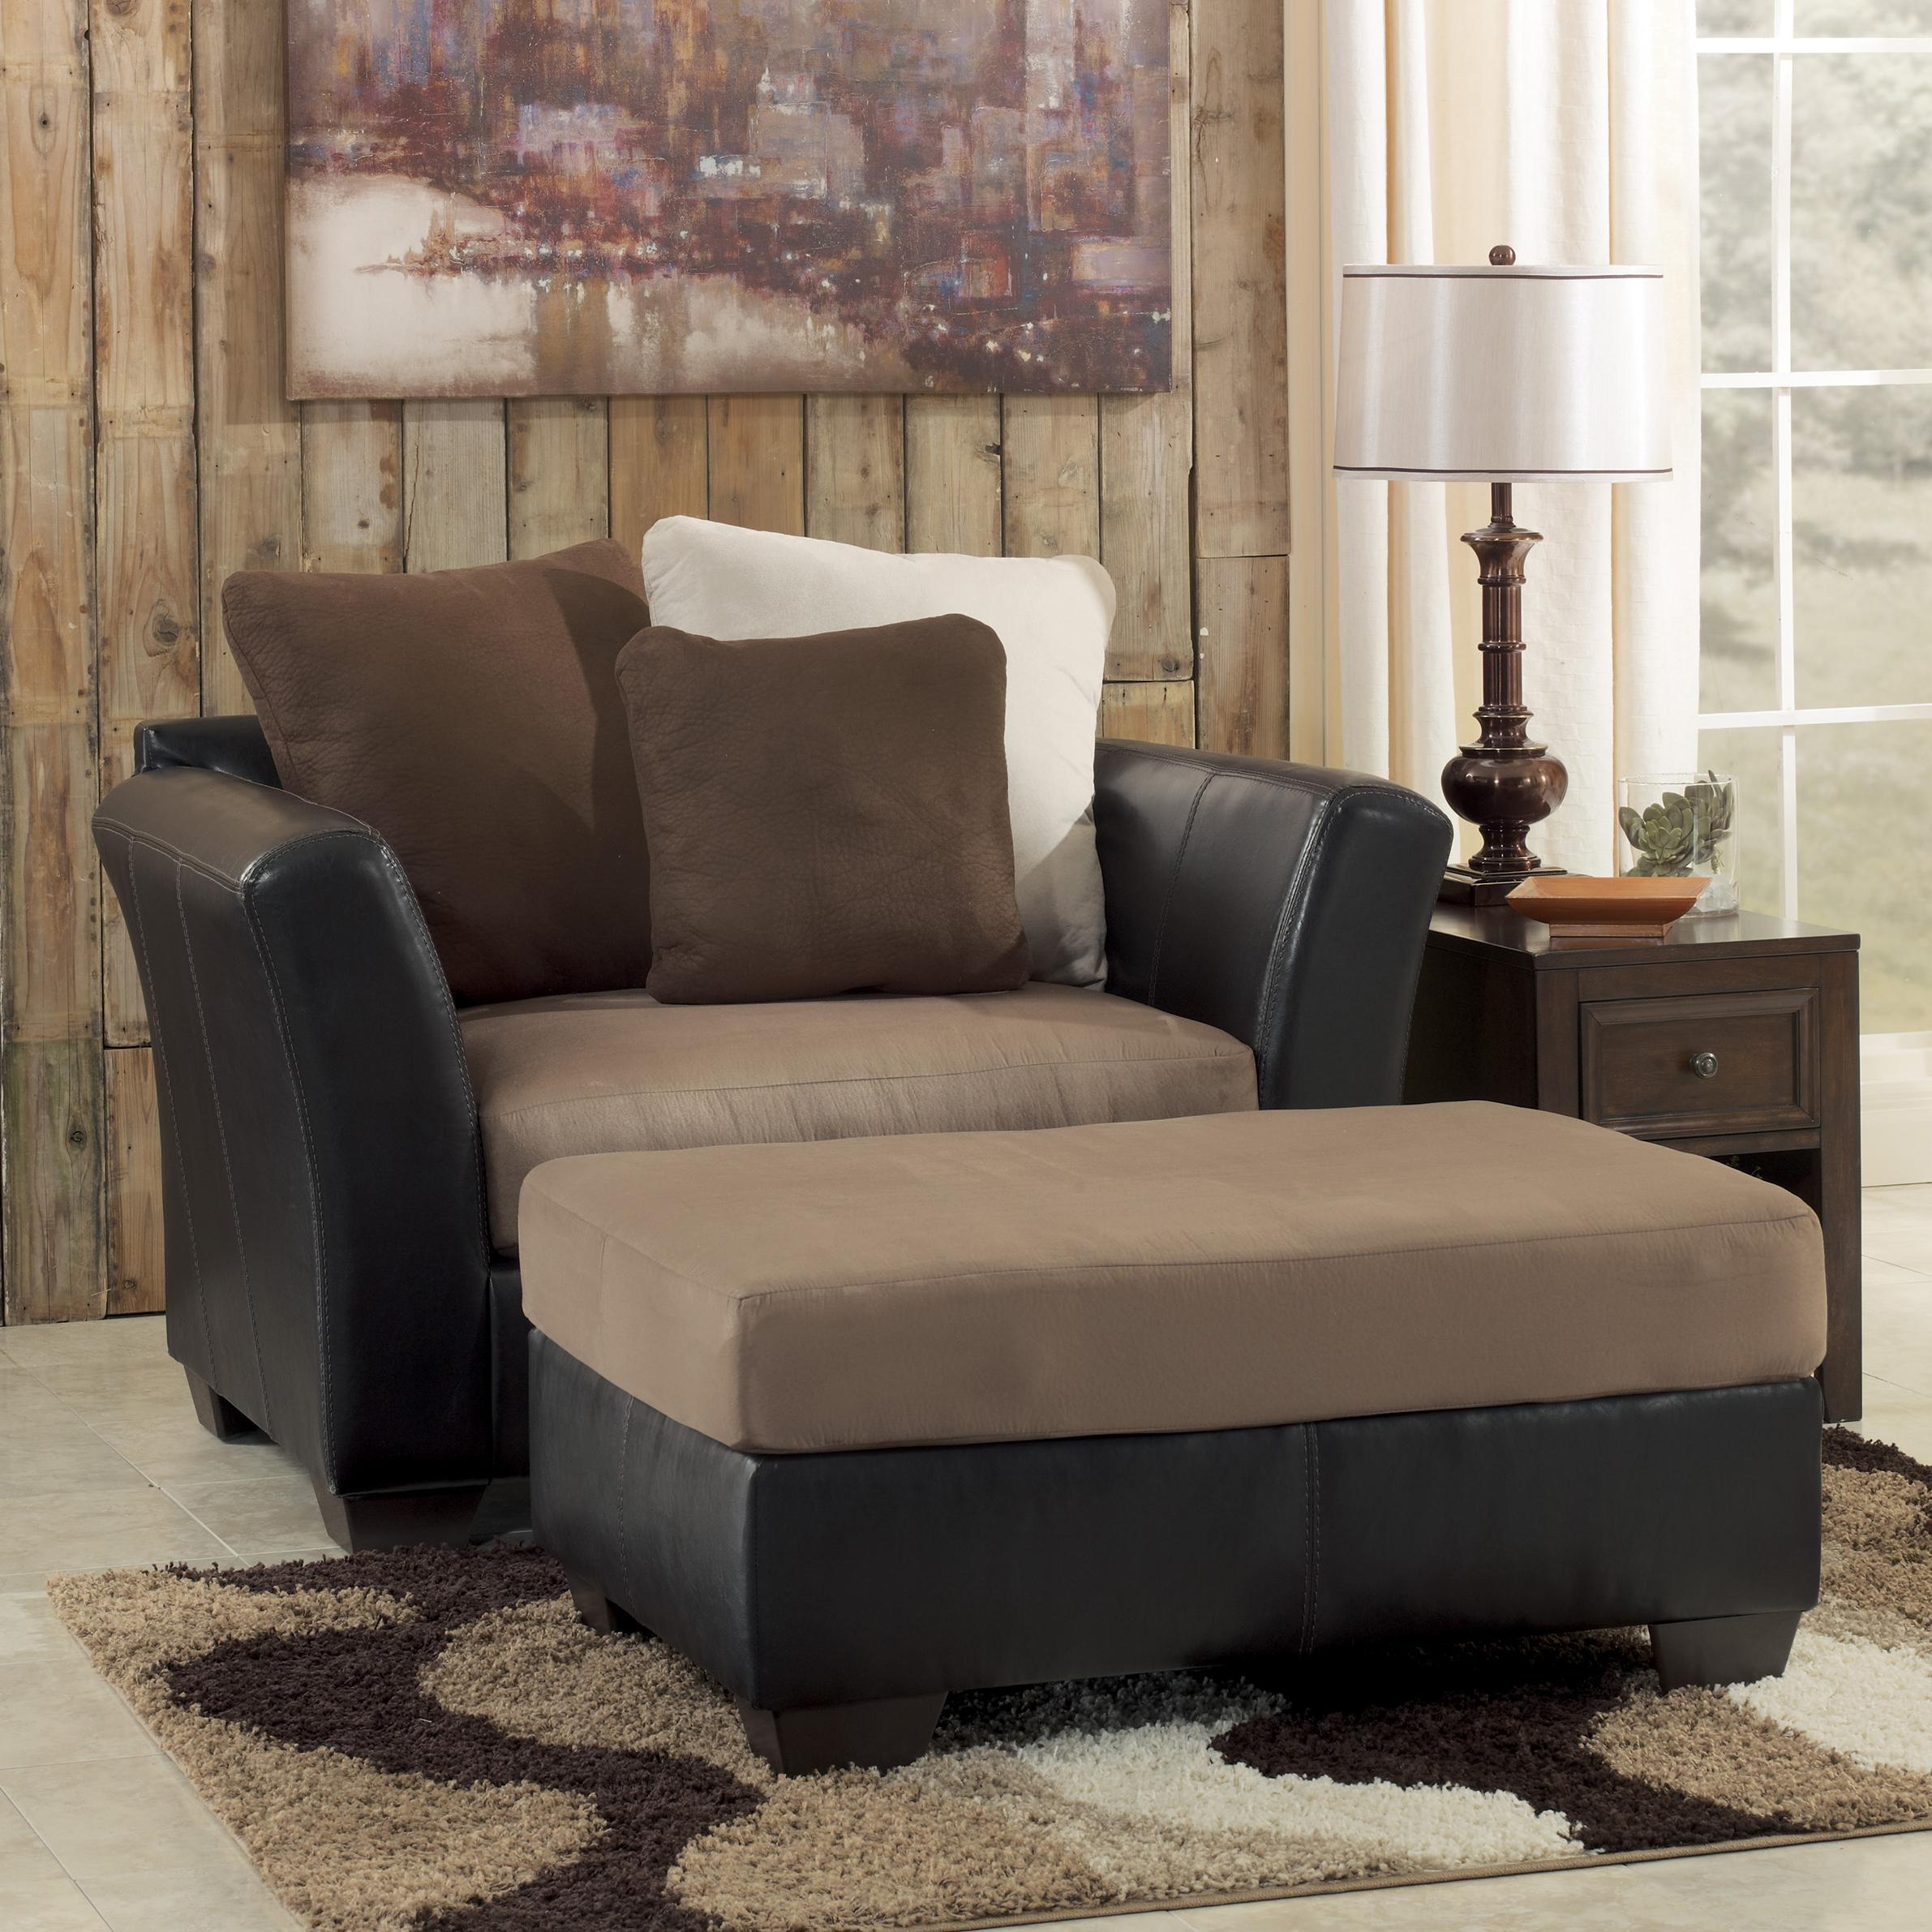 Benchcraft Masoli - Mocha Chair and a Half & Oversized Accent Ottoman - Item Number: 1420123+08